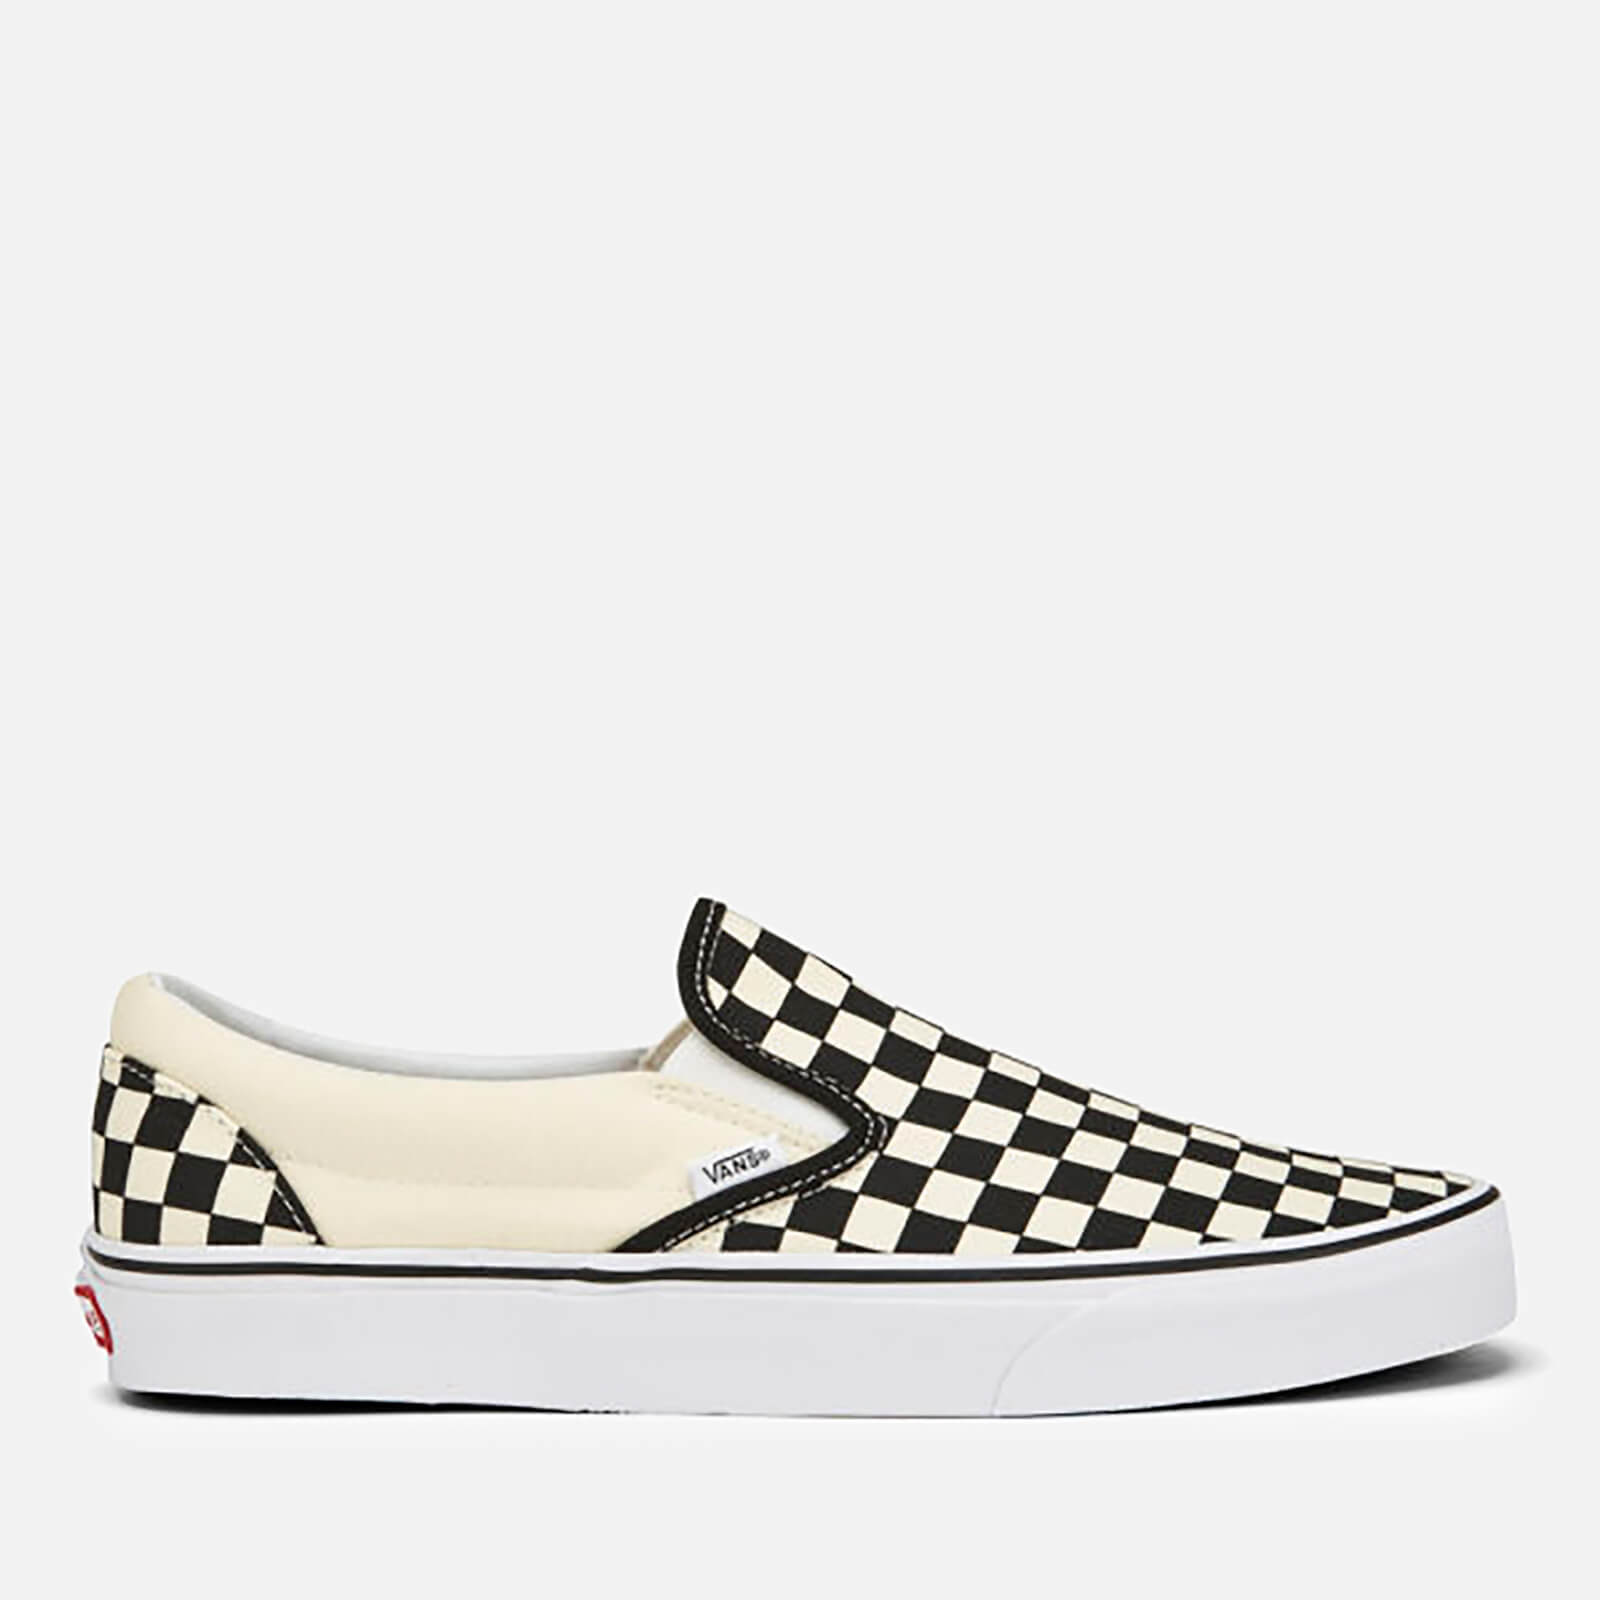 60a4ae08557a Vans Classic Slip-On Canvas Trainers - Black White Mens Footwear